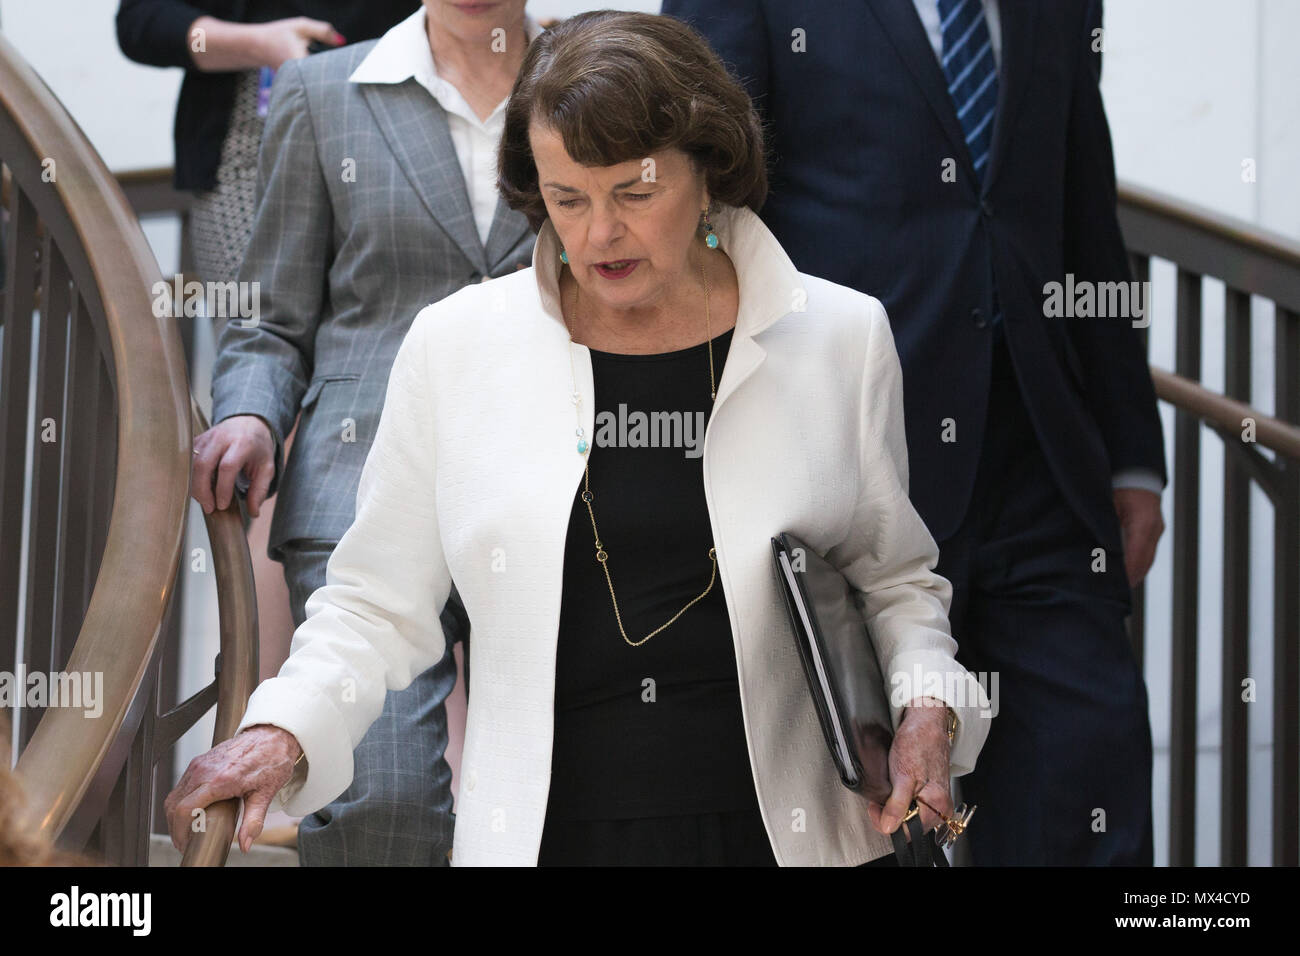 Senator Dianne Feinstein (D-CA) arrives at an all senators briefing on the investigation into President Trump's ties to Russia by Deputy Attorney General Rod Rosenstein at the U.S. Capitol. - Stock Image